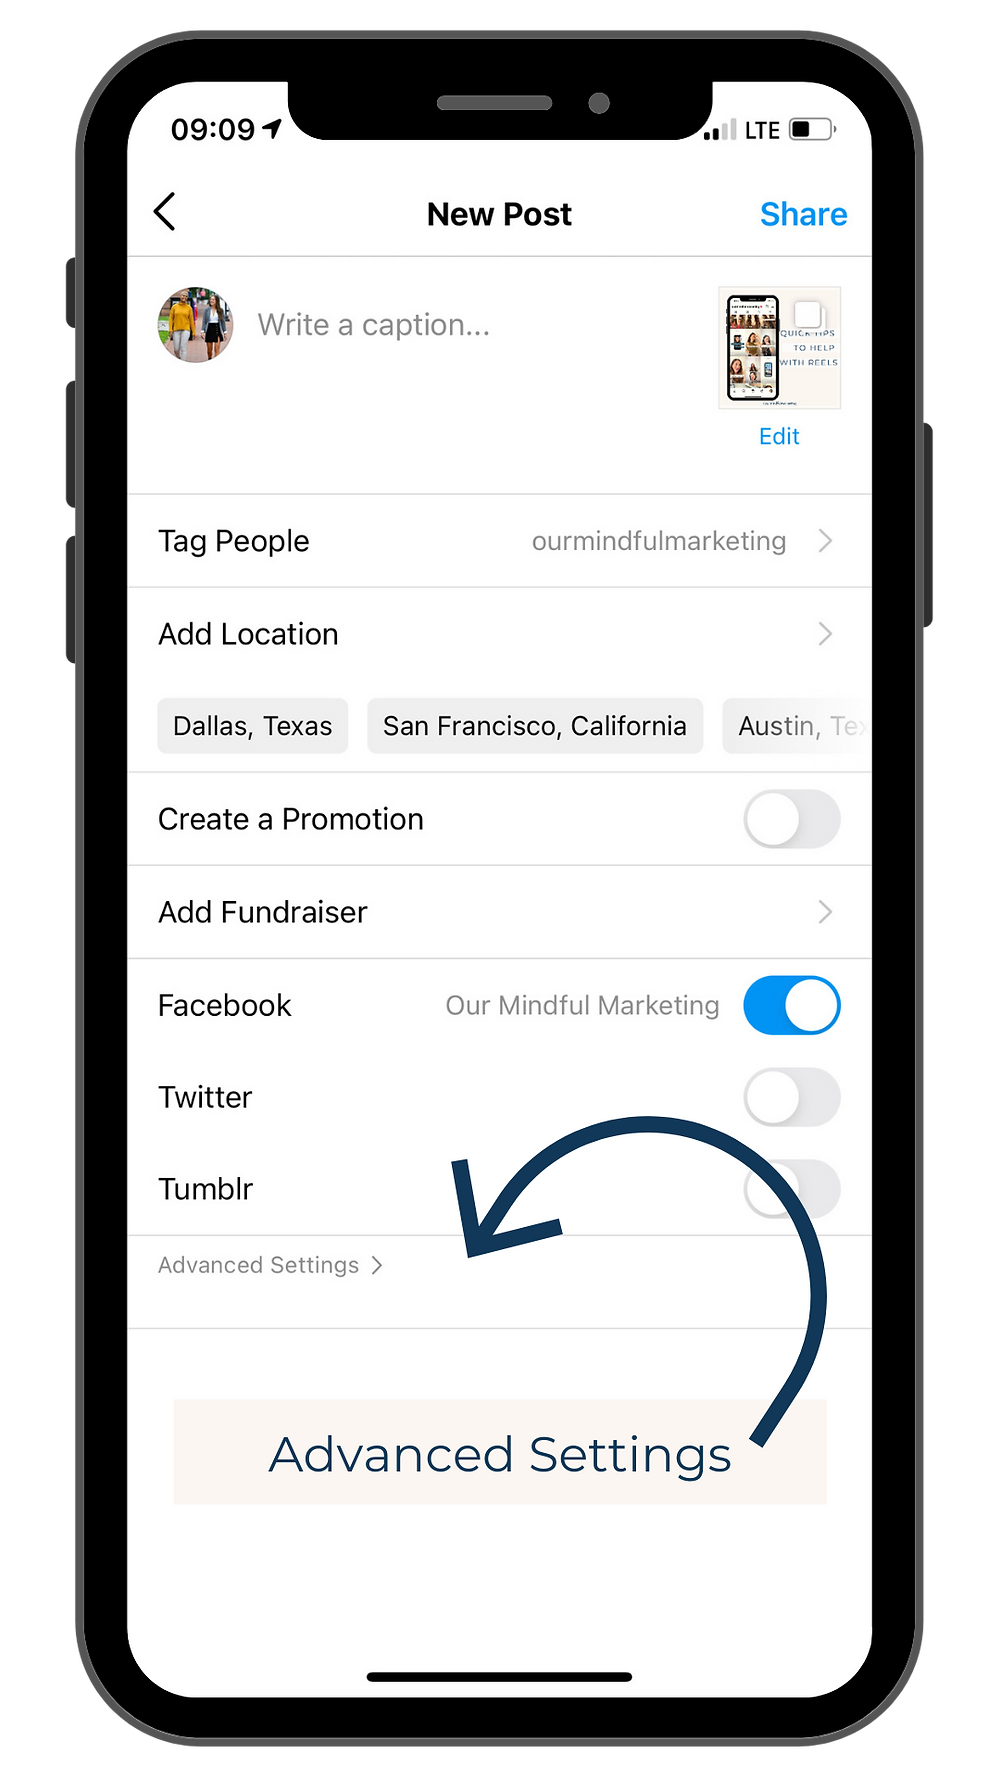 Image of a screenshot of the 'Advanced Settings' feature or also known as technology applications in the Instagram settings when drafting a new post. Displayed from the profile of @ourmindfulmarketing